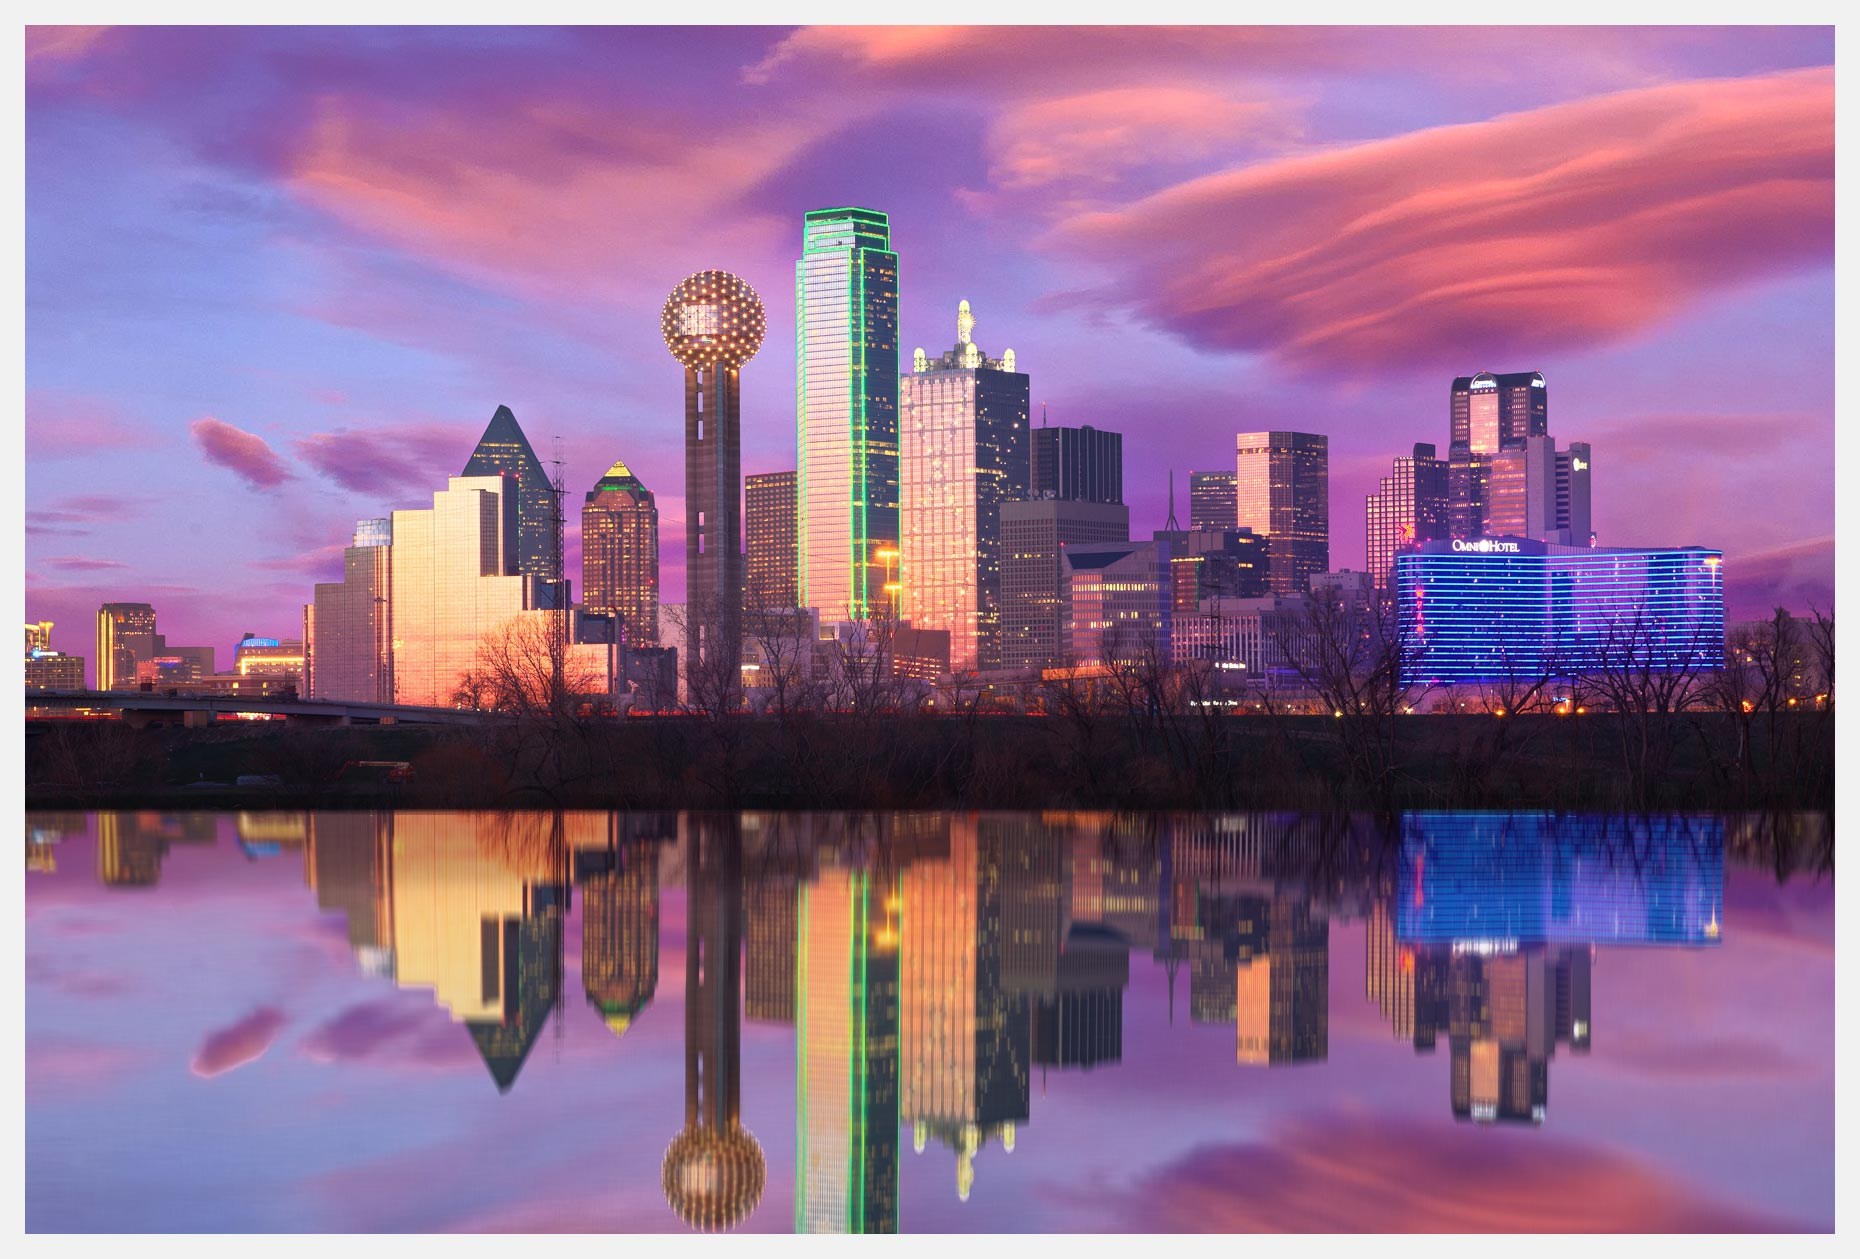 Dallas Skyline with Reflection at Dusk